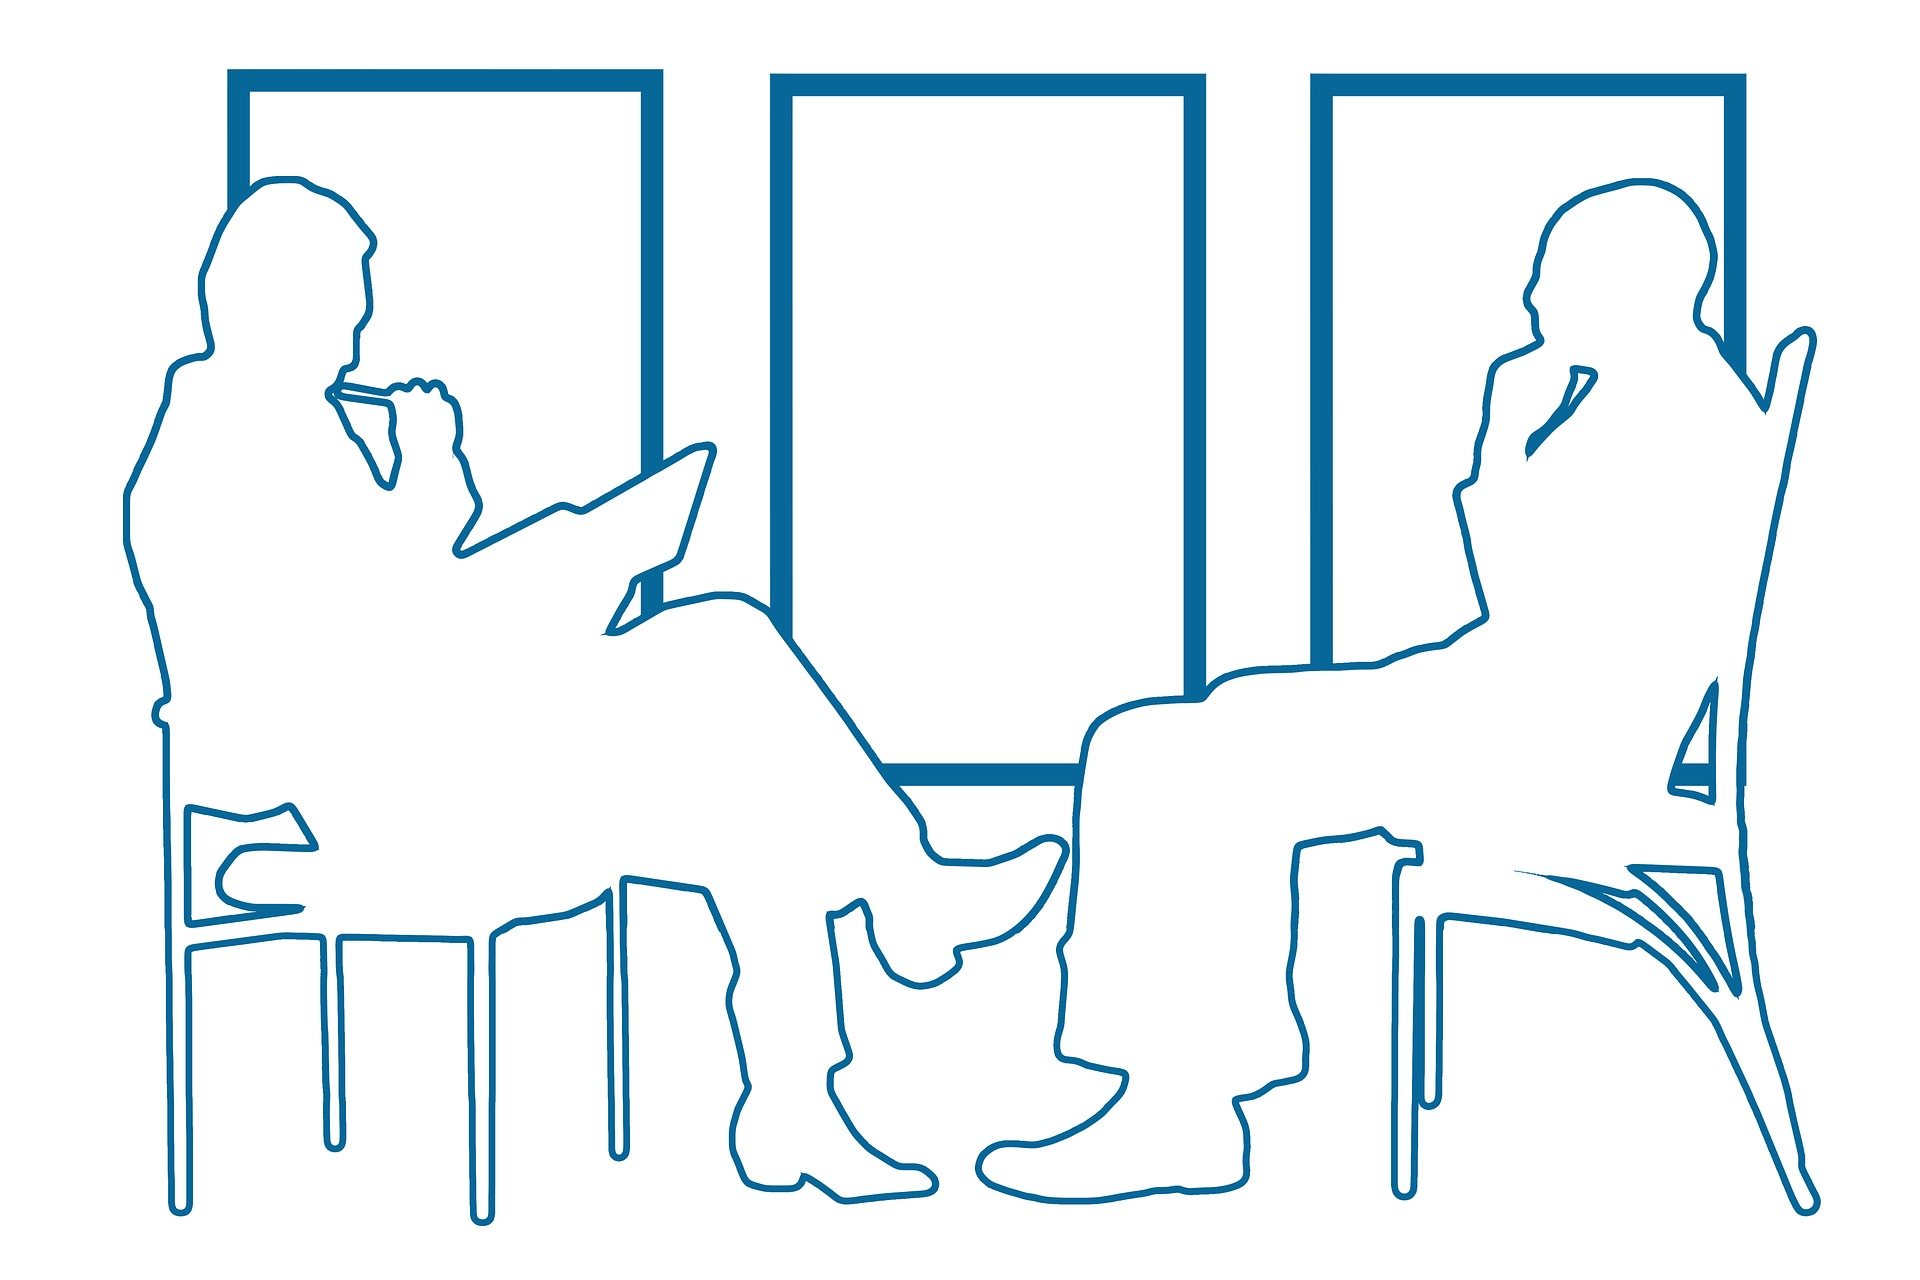 Devops interview questions silhouettes